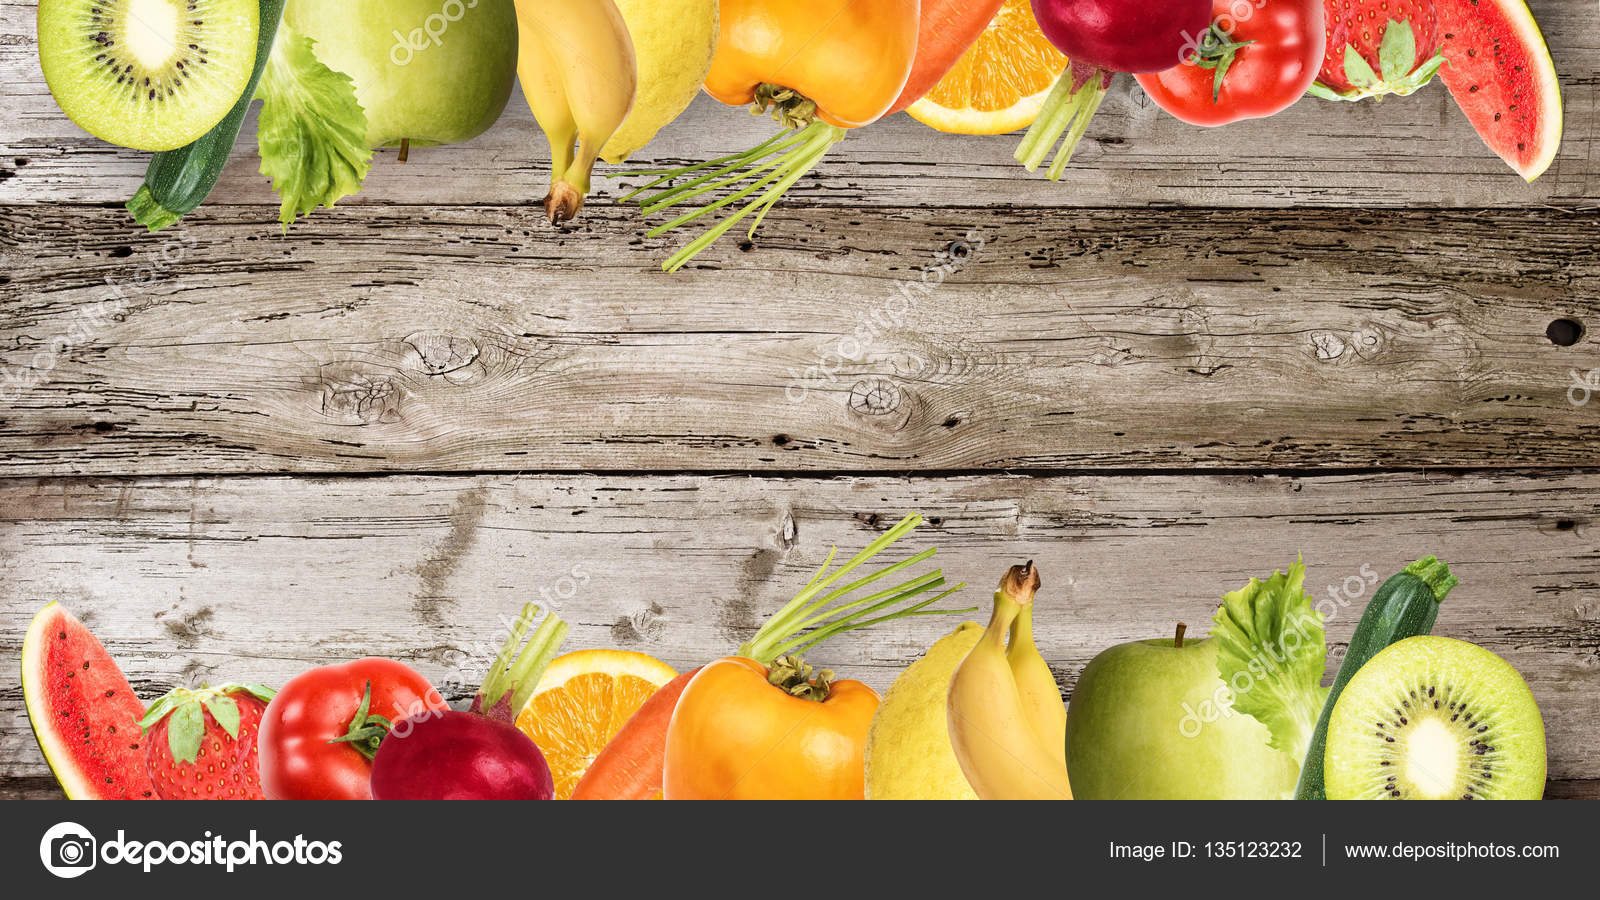 Colourful Fruits And Vegetables Banner Stock Photo C Alphaspirit 135123232